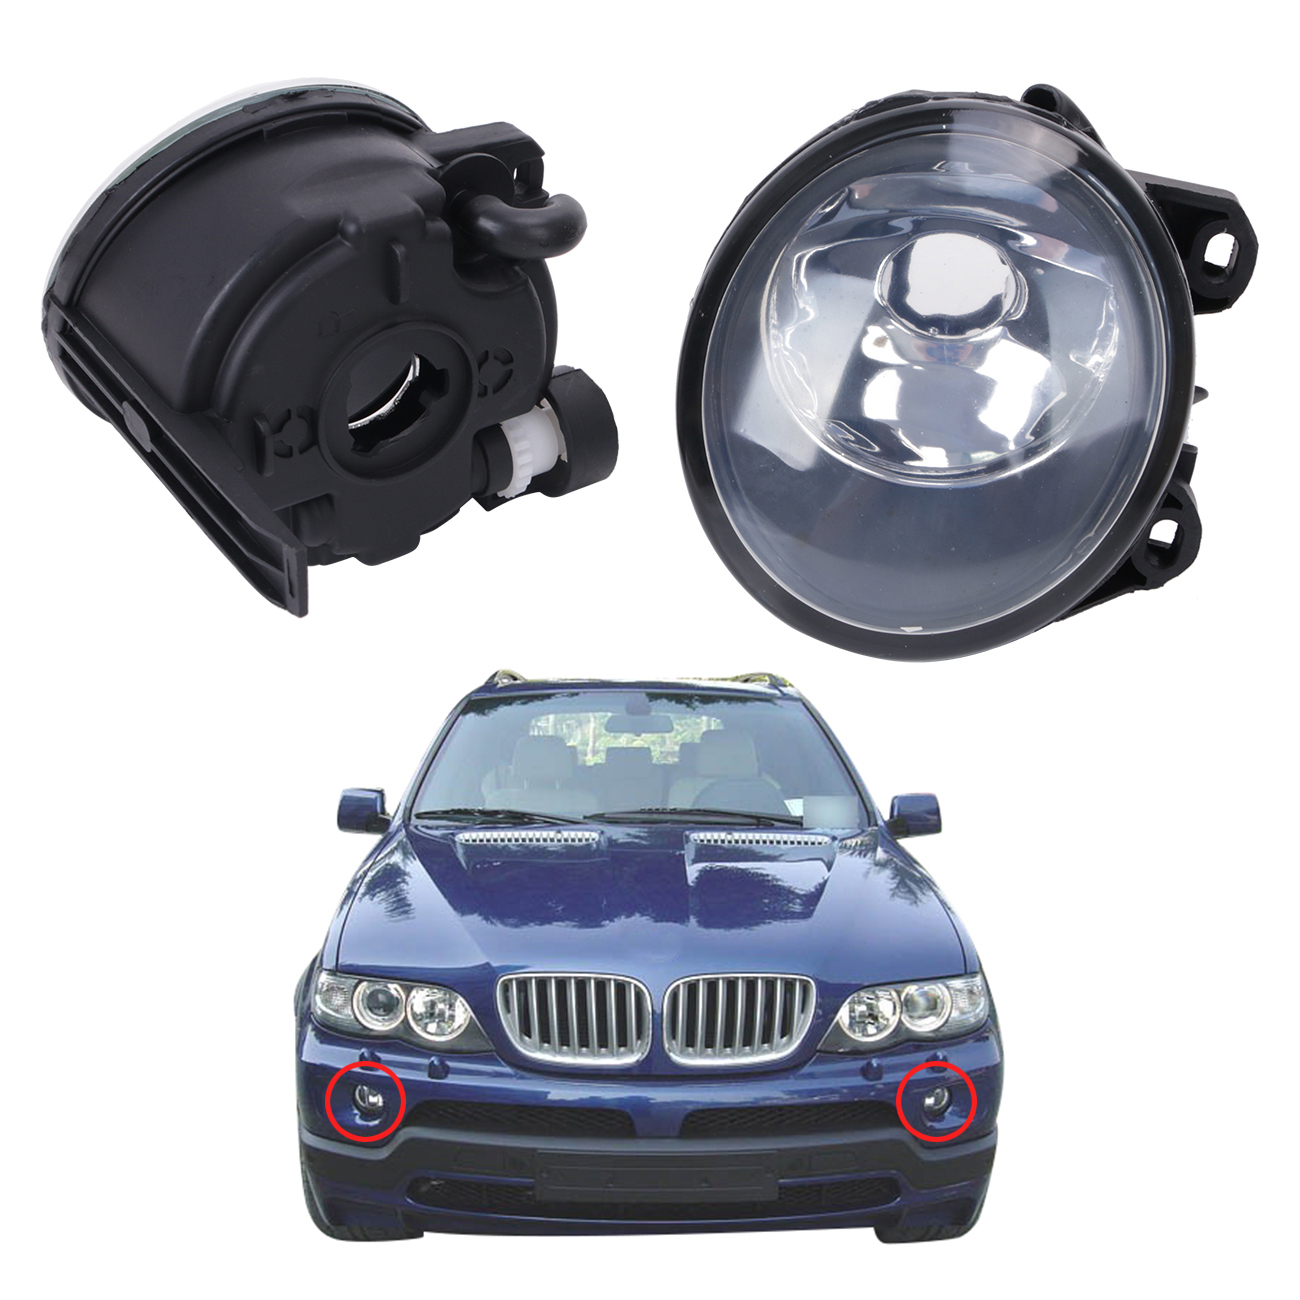 For BMW E53 X5 2003-2006 Front Bumper Clear Glass Lens Driving Fog Light Lamp Replacment  Foglamps Housing #W084 1pcs front halogen foglamps clear glass lens front fog light driving lamp for volkswagen passat b6 for right side